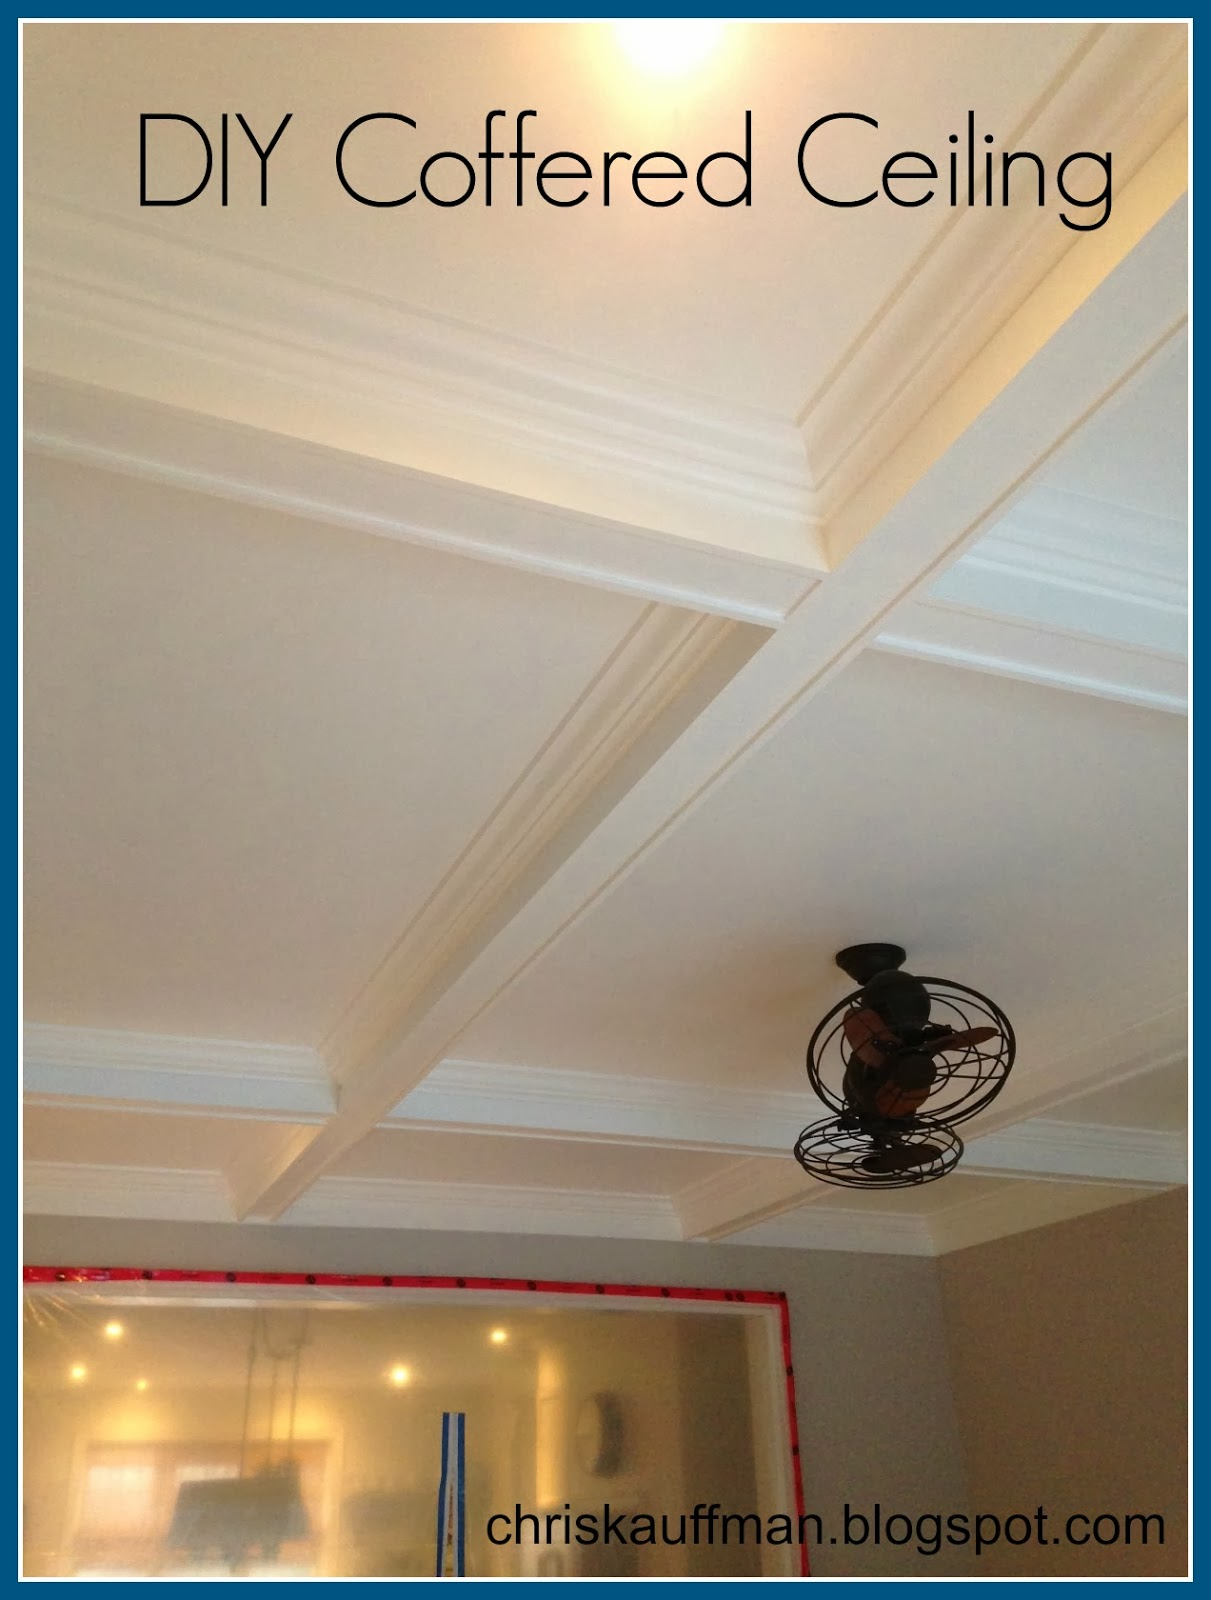 How to build a coffered ceiling - I Thought I Should Give A Little Run Down In One Place As To How I Completed My Coffered Ceiling Project Just In Case You Want To Try This Project